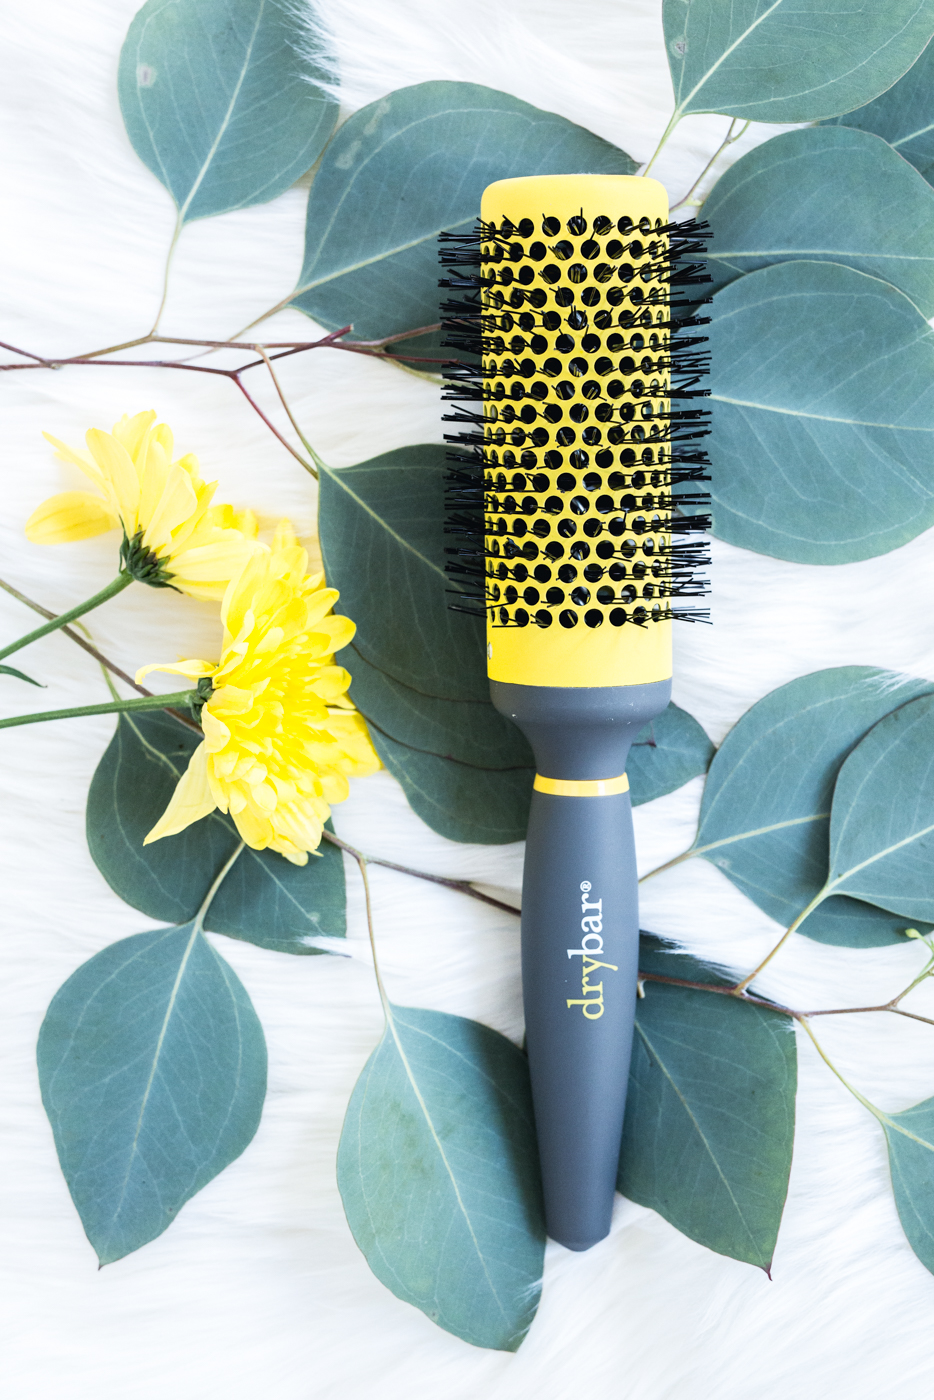 Drybar 'Full Pint' Medium Round Ceramic Brush | The Chic Diary